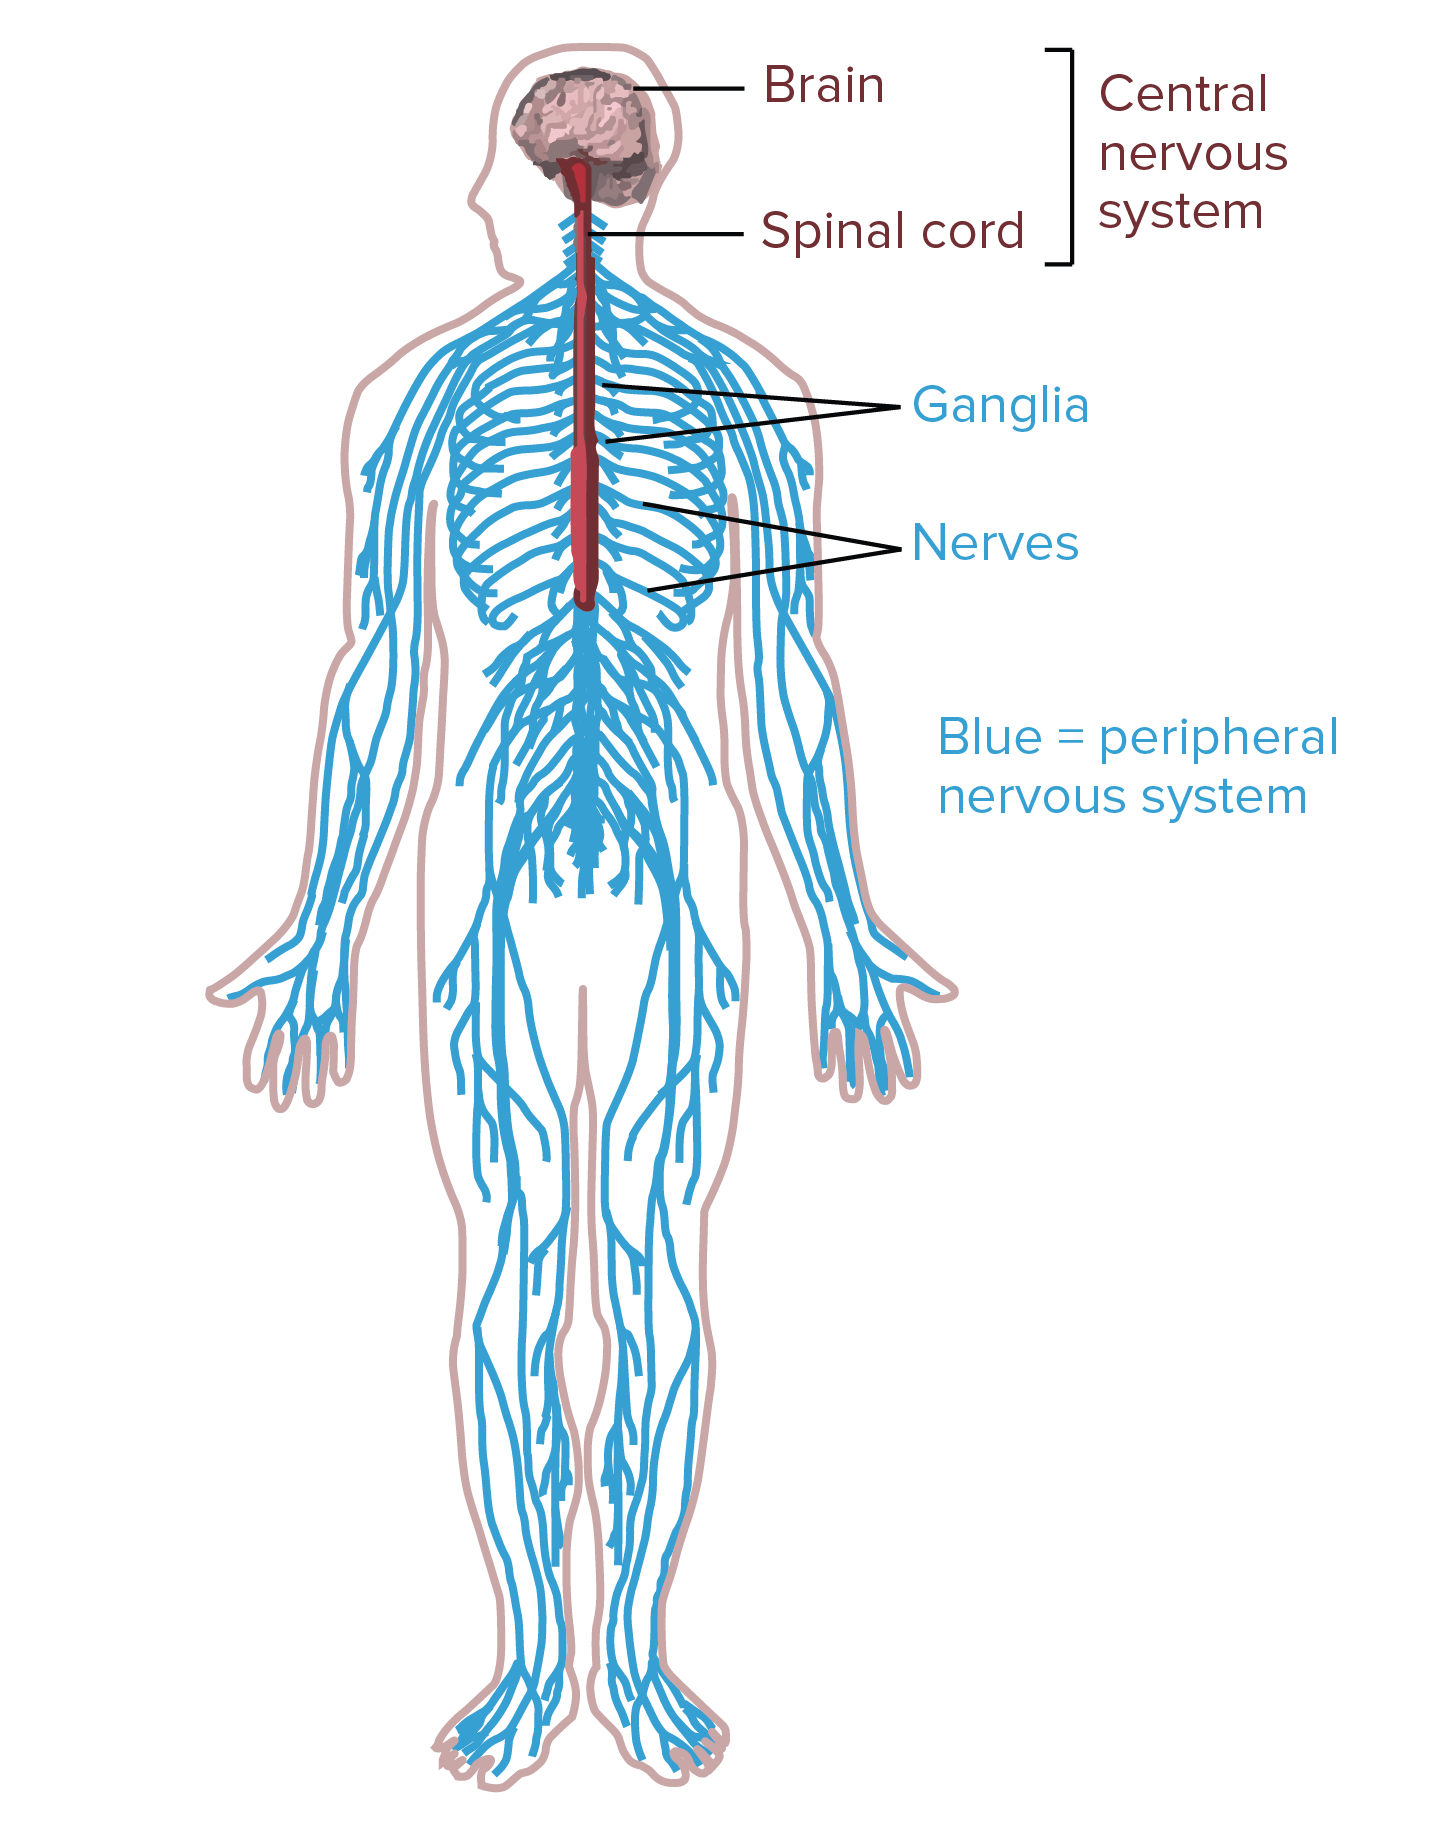 hight resolution of diagram of the human nervous system central nervous system portions of the nervous system